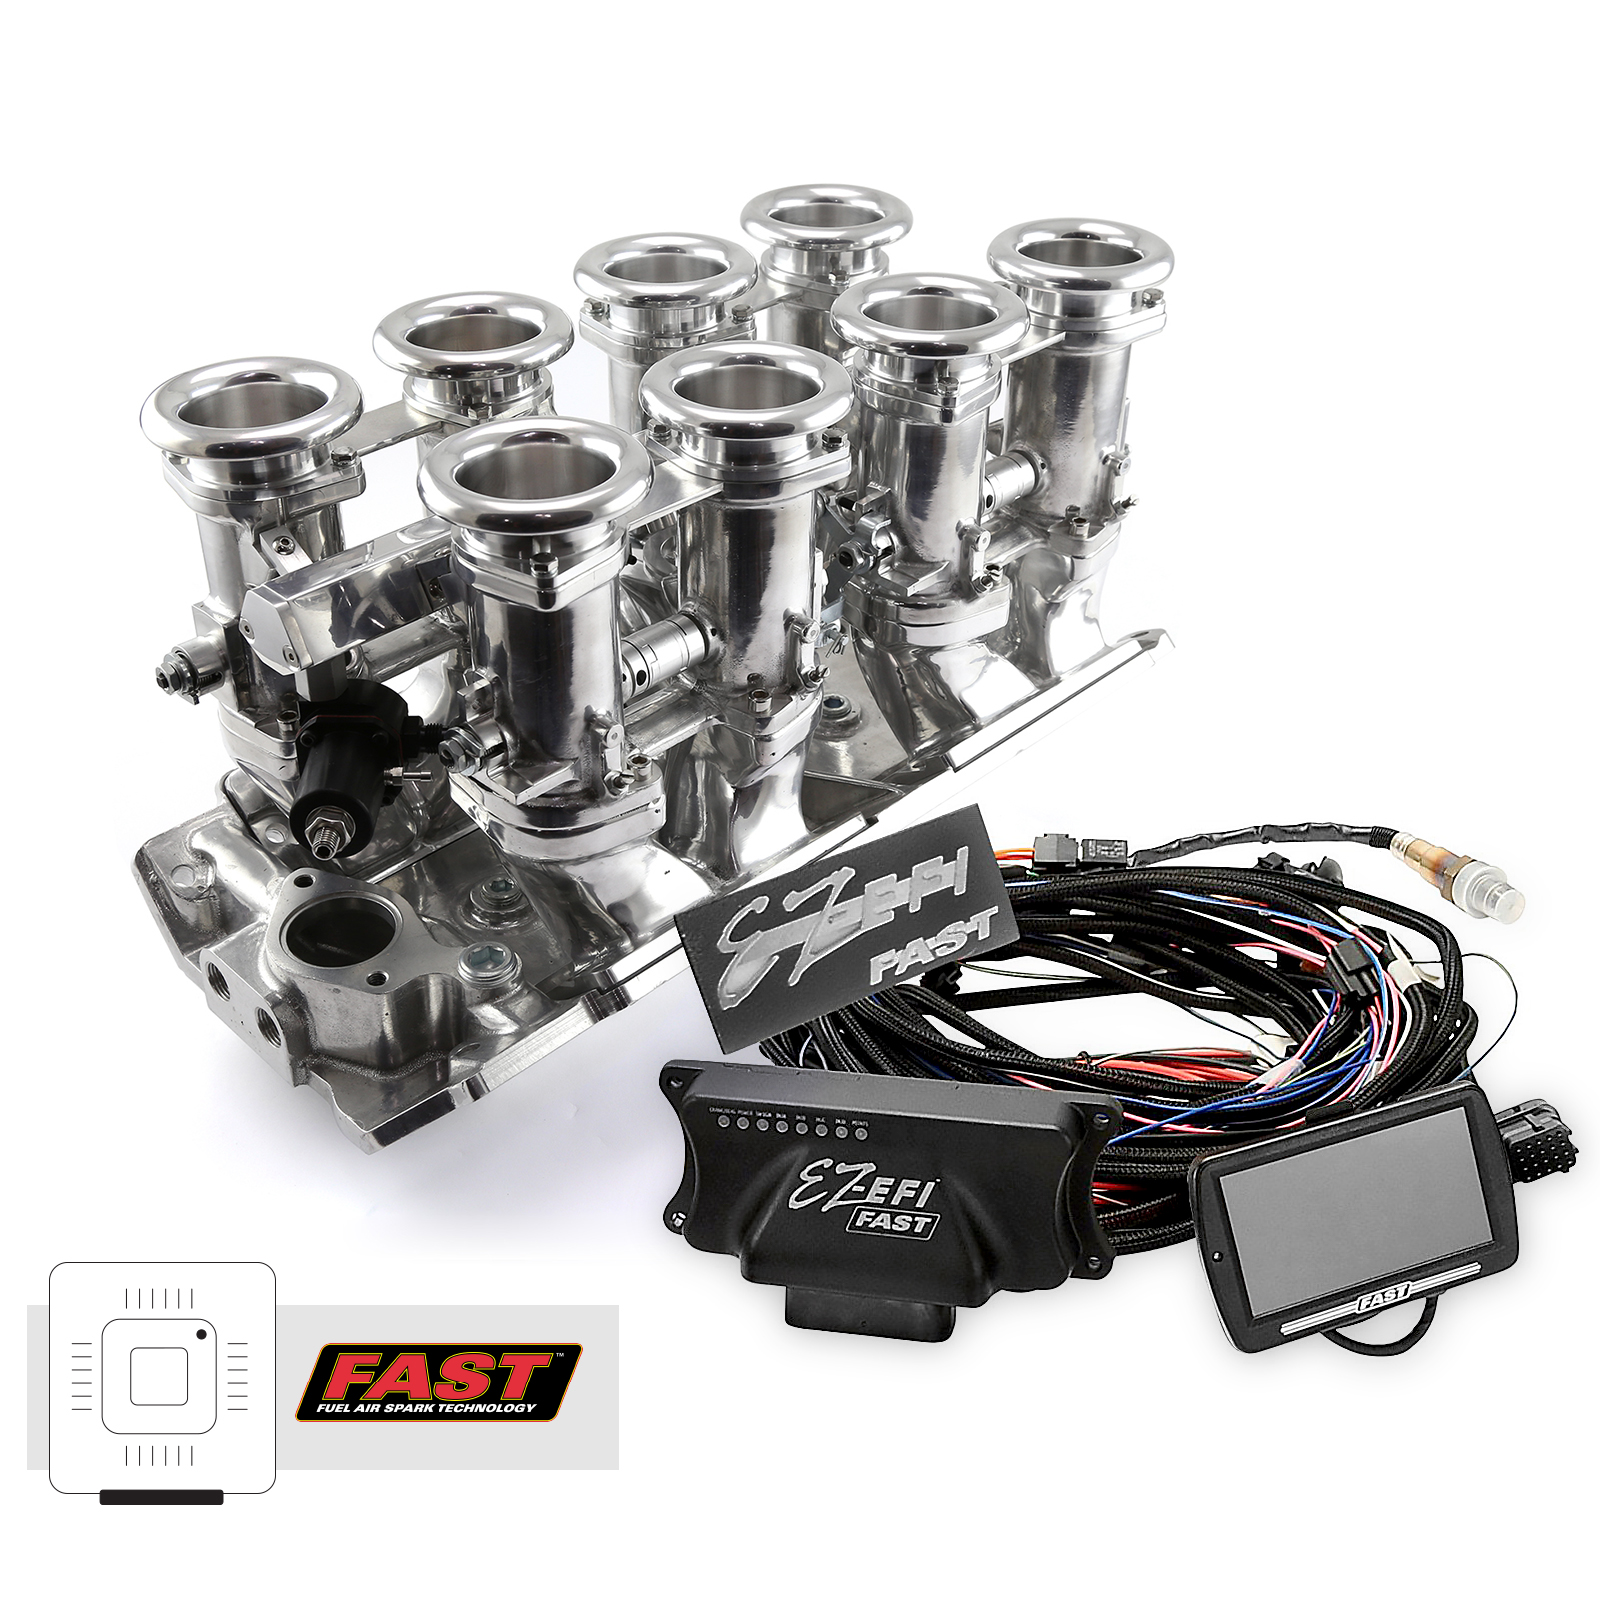 Chevy BBC 454 Downdraft + FAST EZ-EFI 2.0 Fuel Injection System - Polished